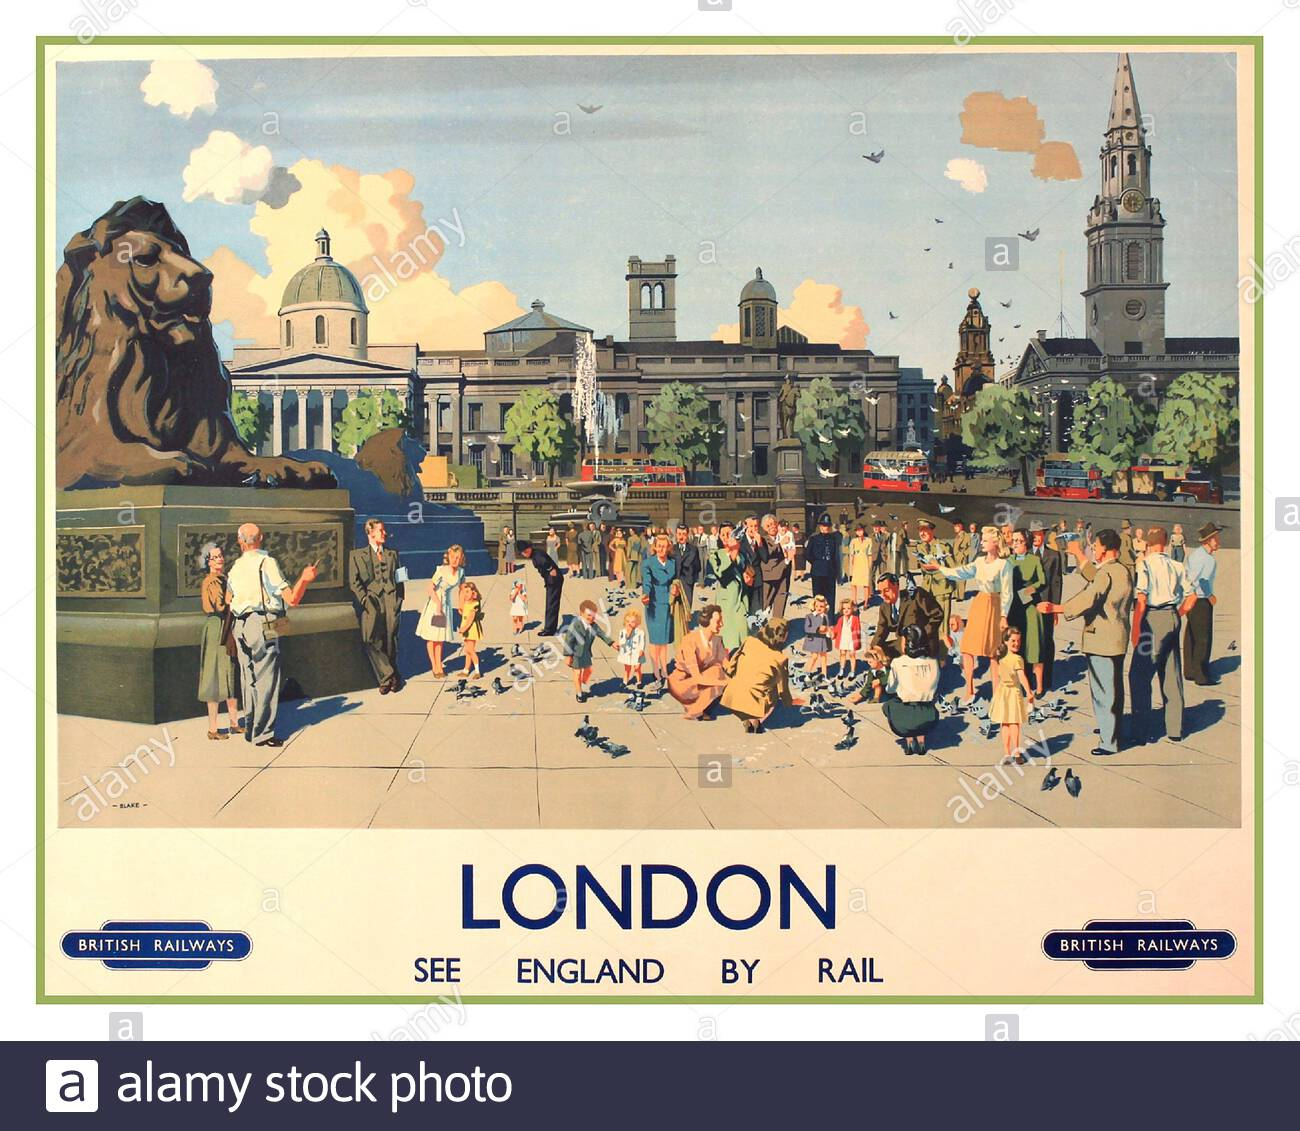 London England Great Britain UK United Kingdom  Travel Advertisement Art Poster